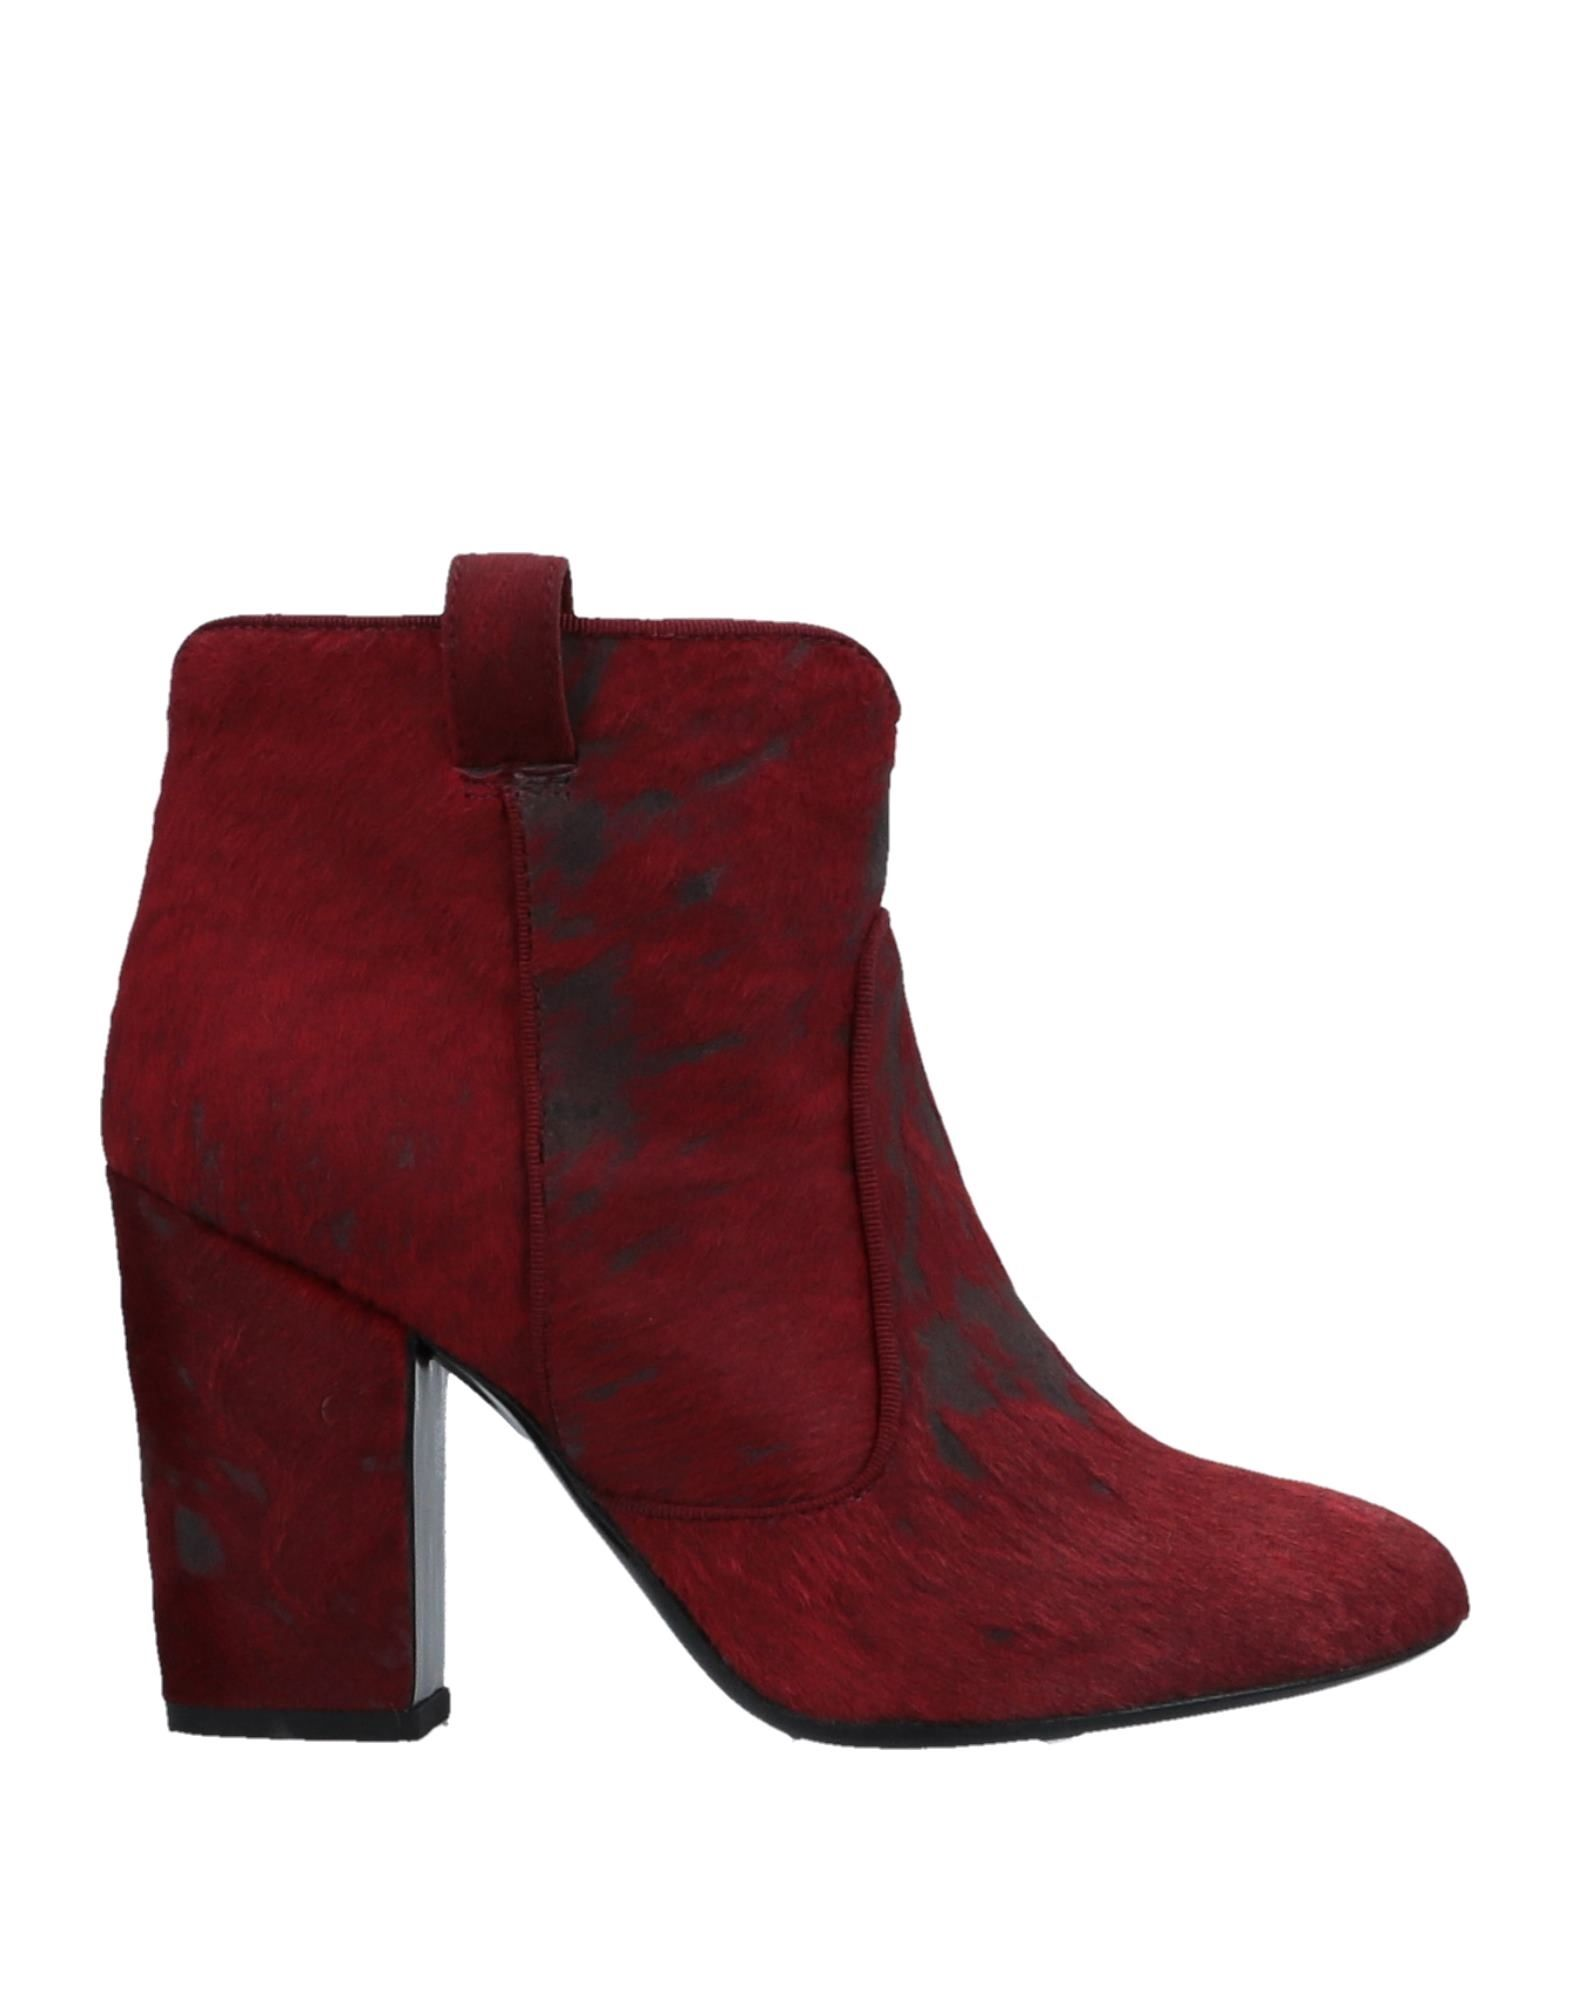 Bottine Laurence Dacade Femme - Bottines Laurence Dacade Brique Super rabais